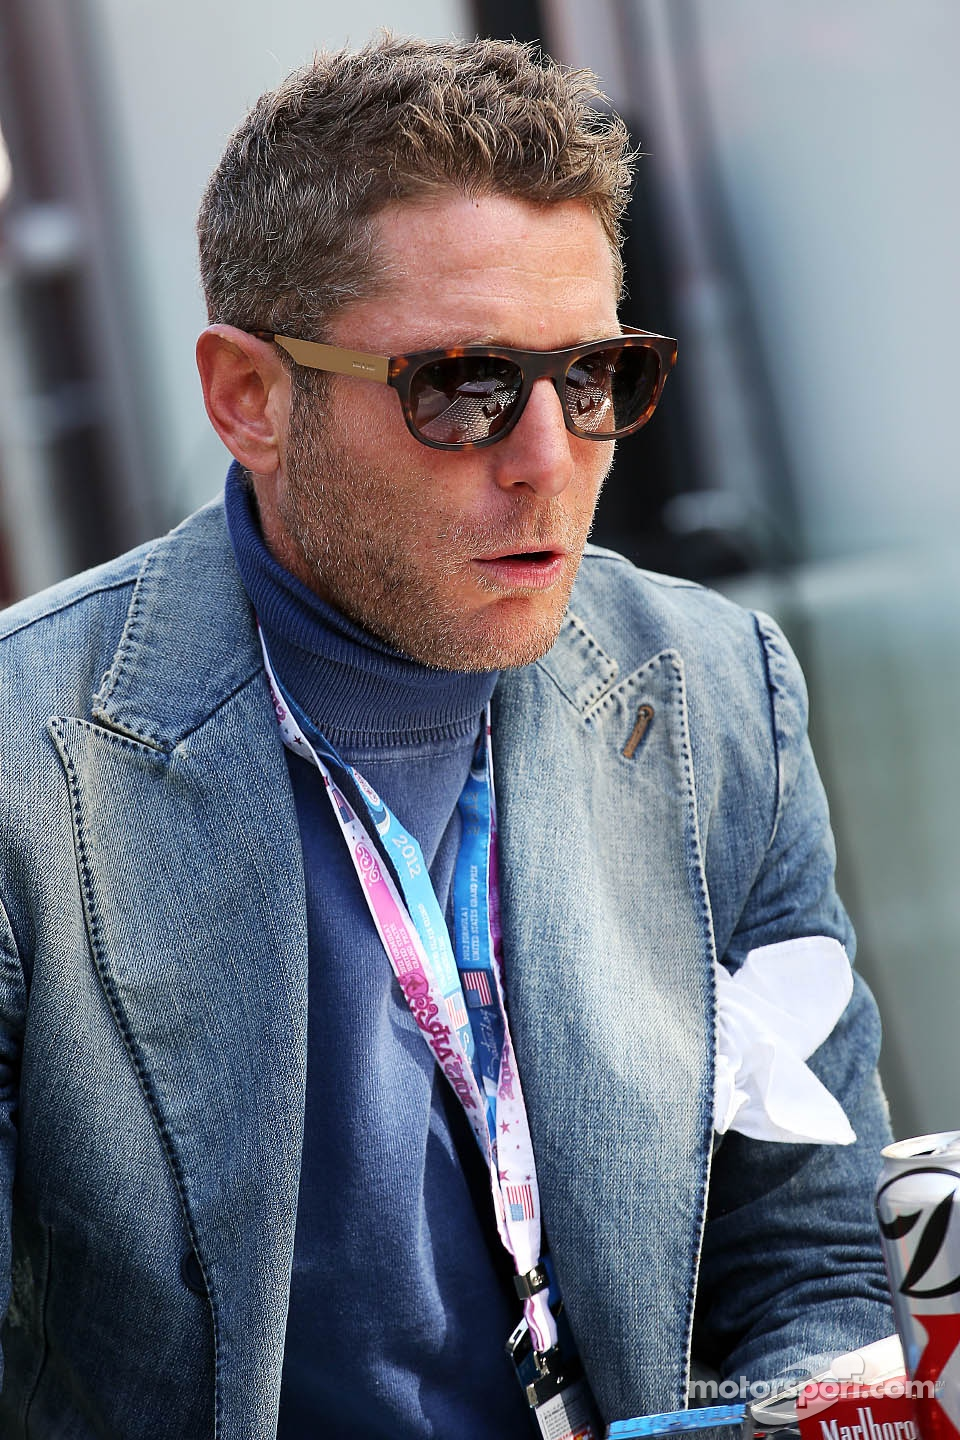 Lapo Elkann